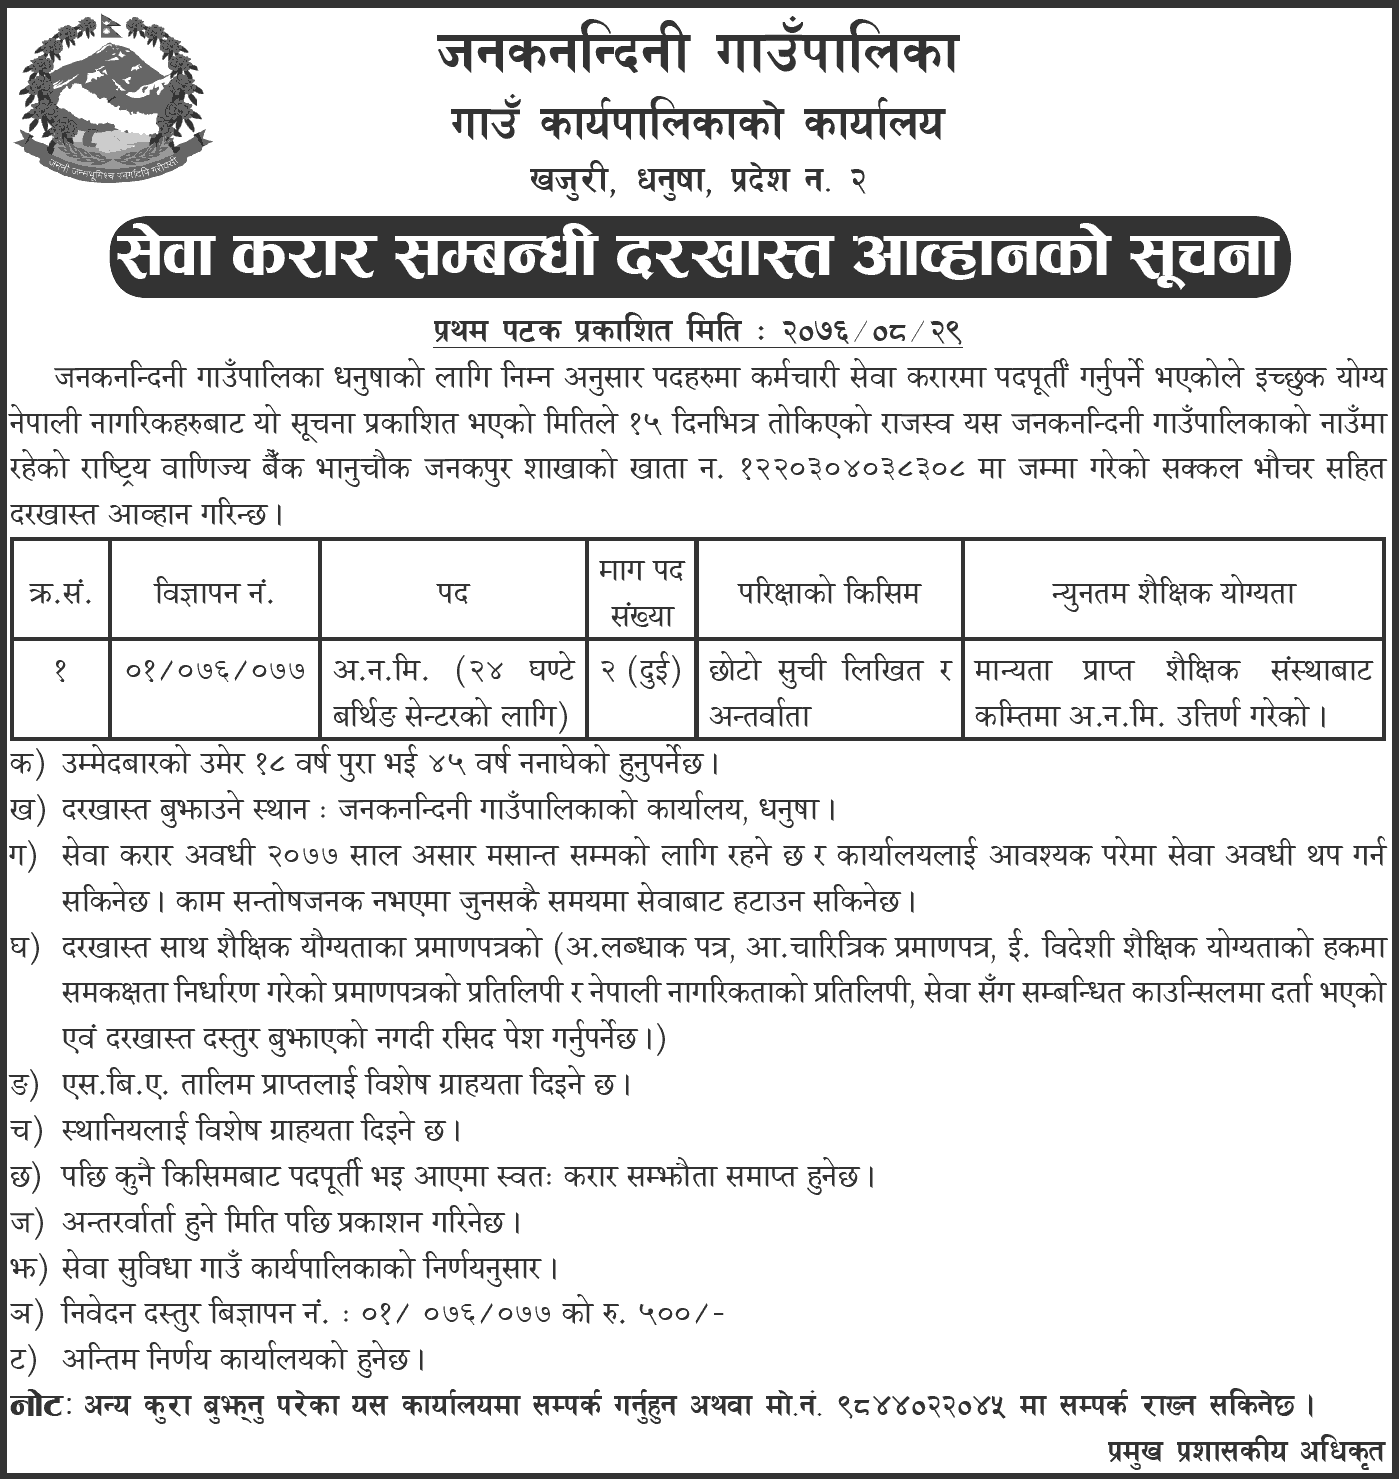 Janaknandani Rural Municipality Vacancy for ANM